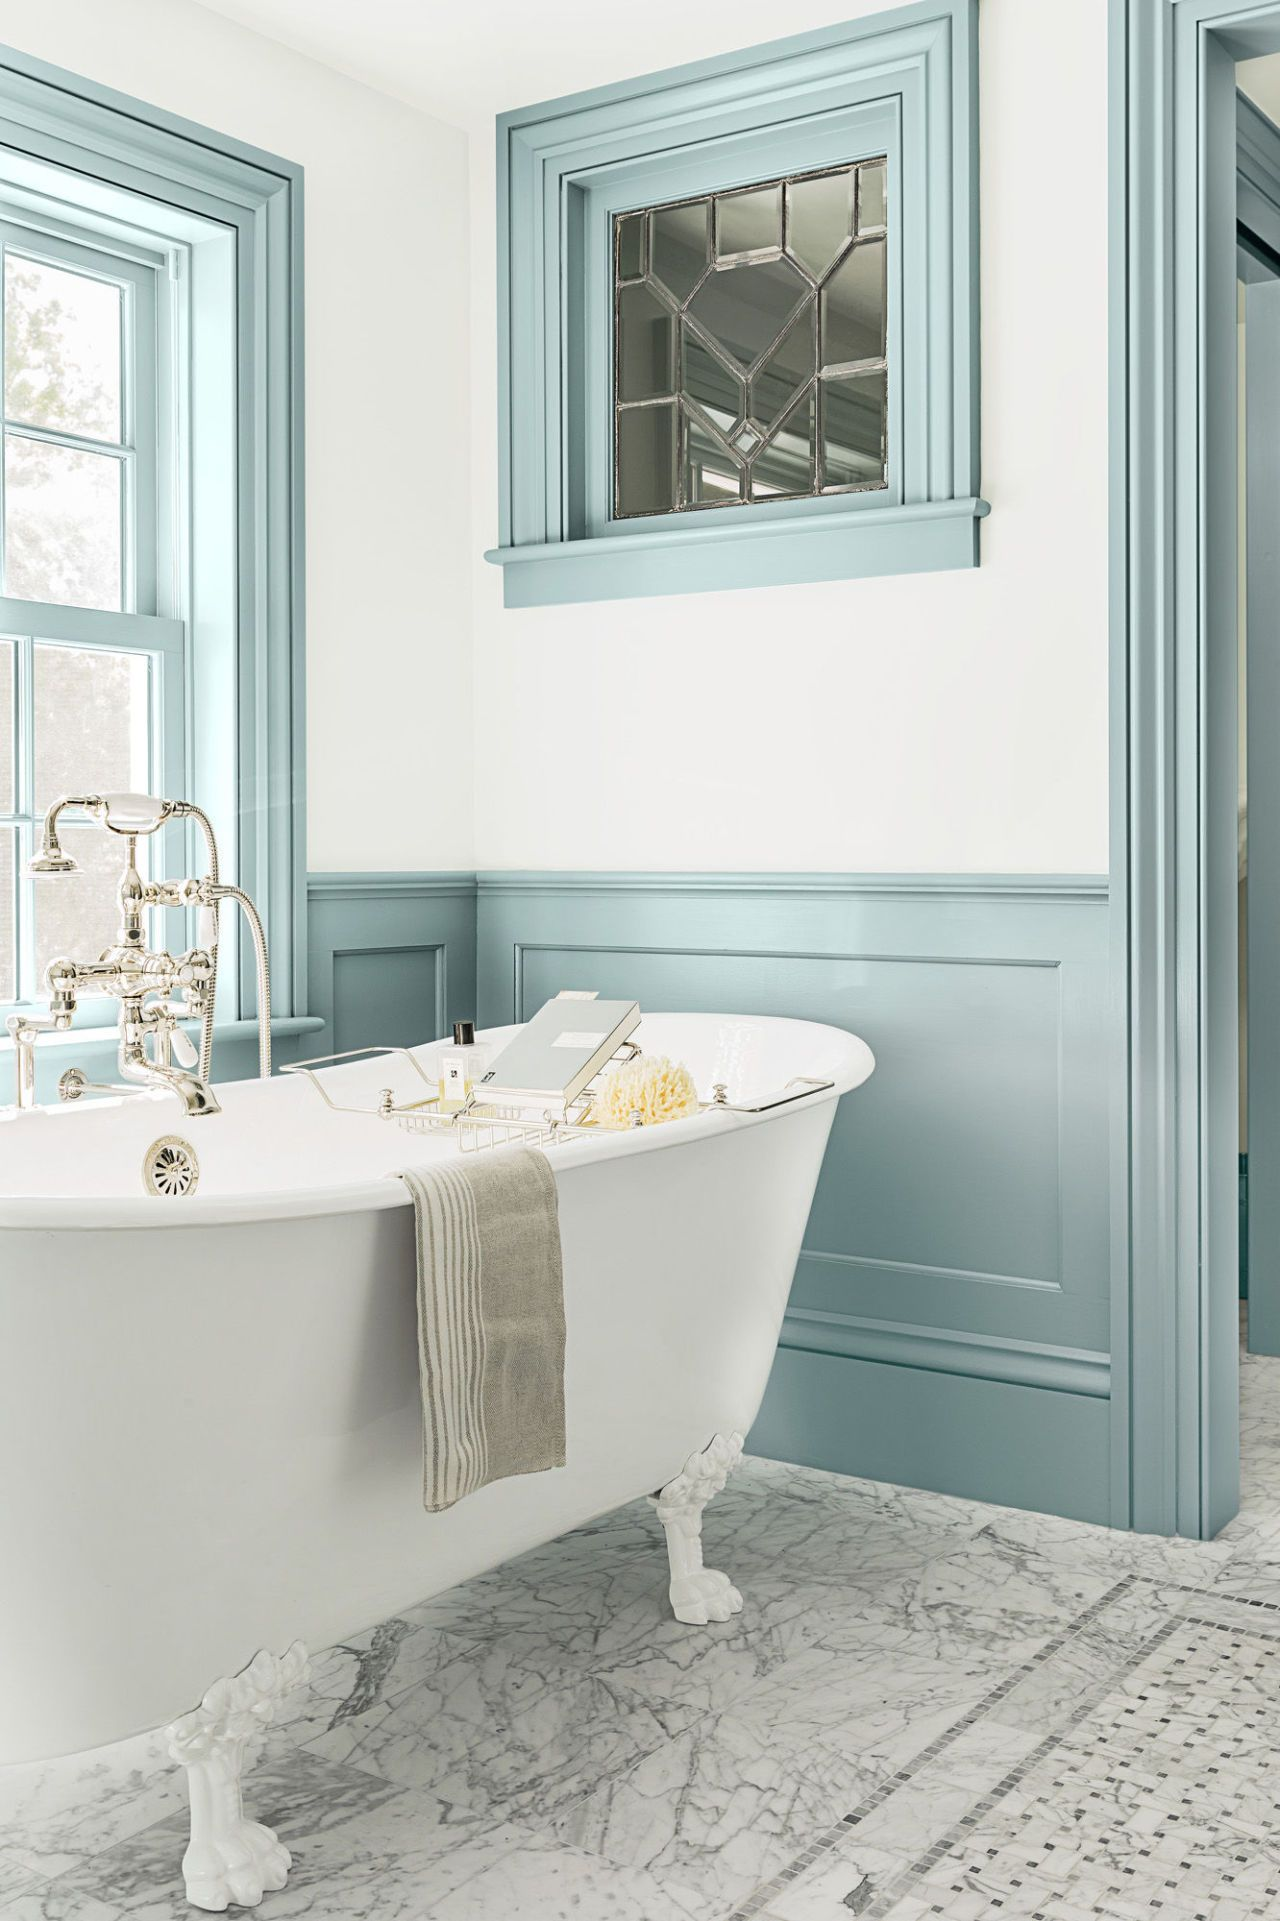 Decorating Bathroom Design Ideas 30 of The Best Small and Functional ...